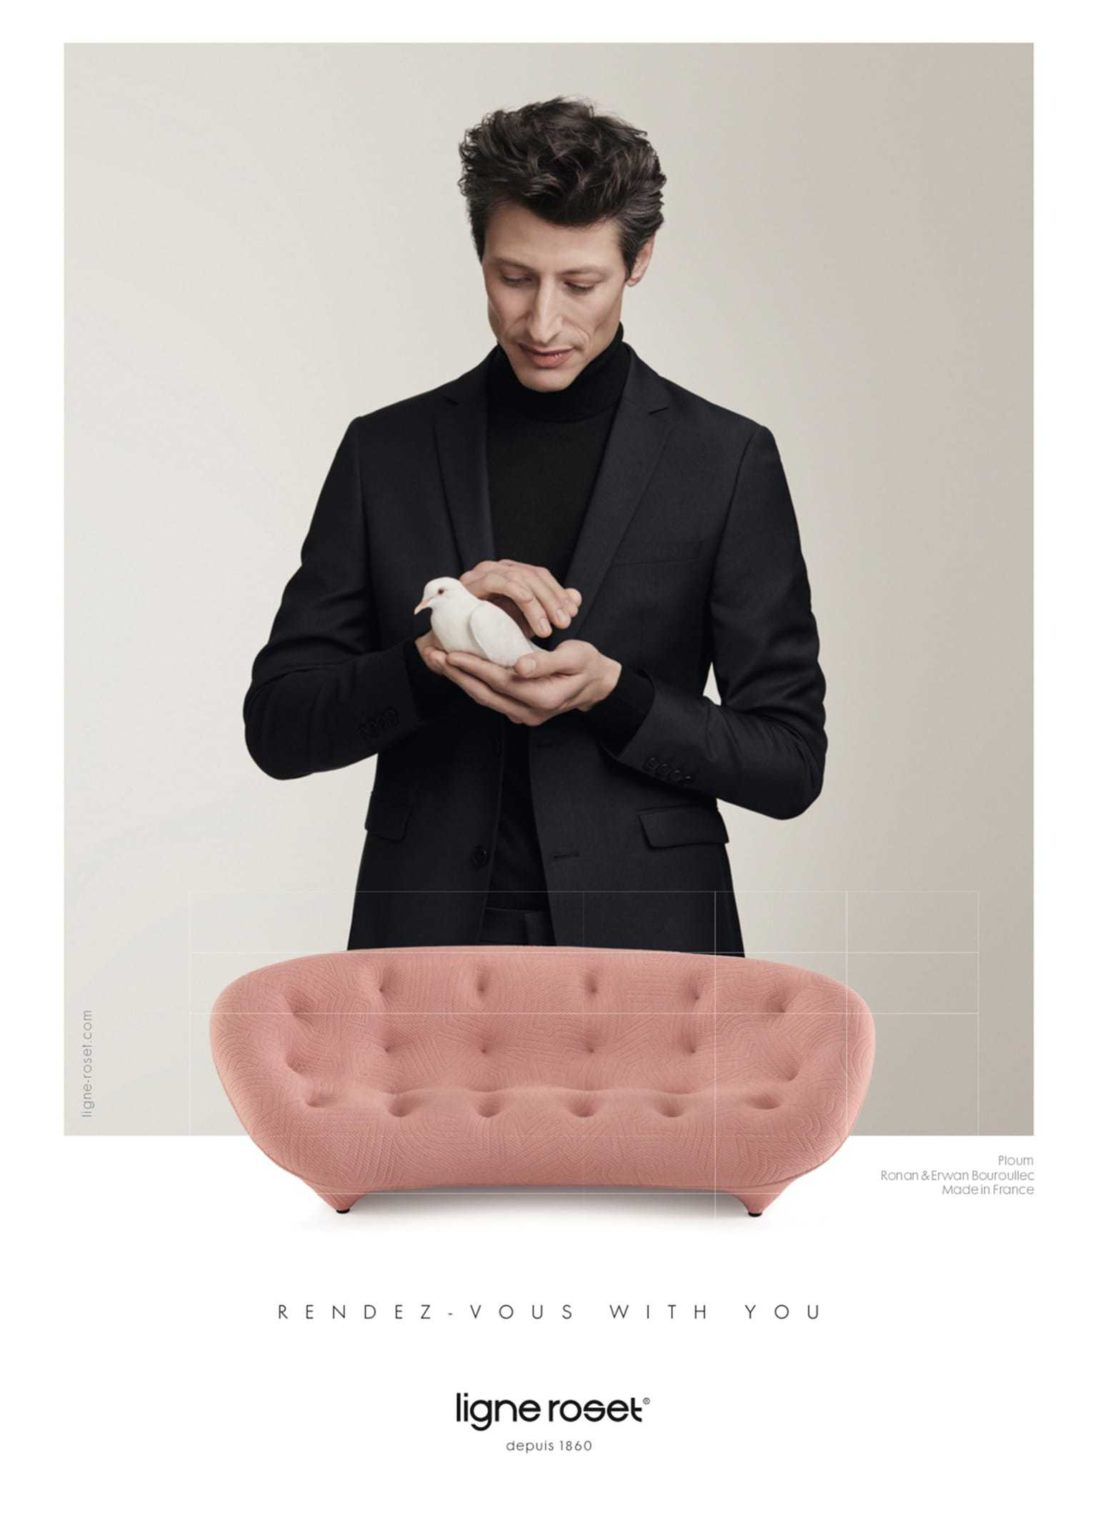 FAS LIGNEROSET DIRECTION 04